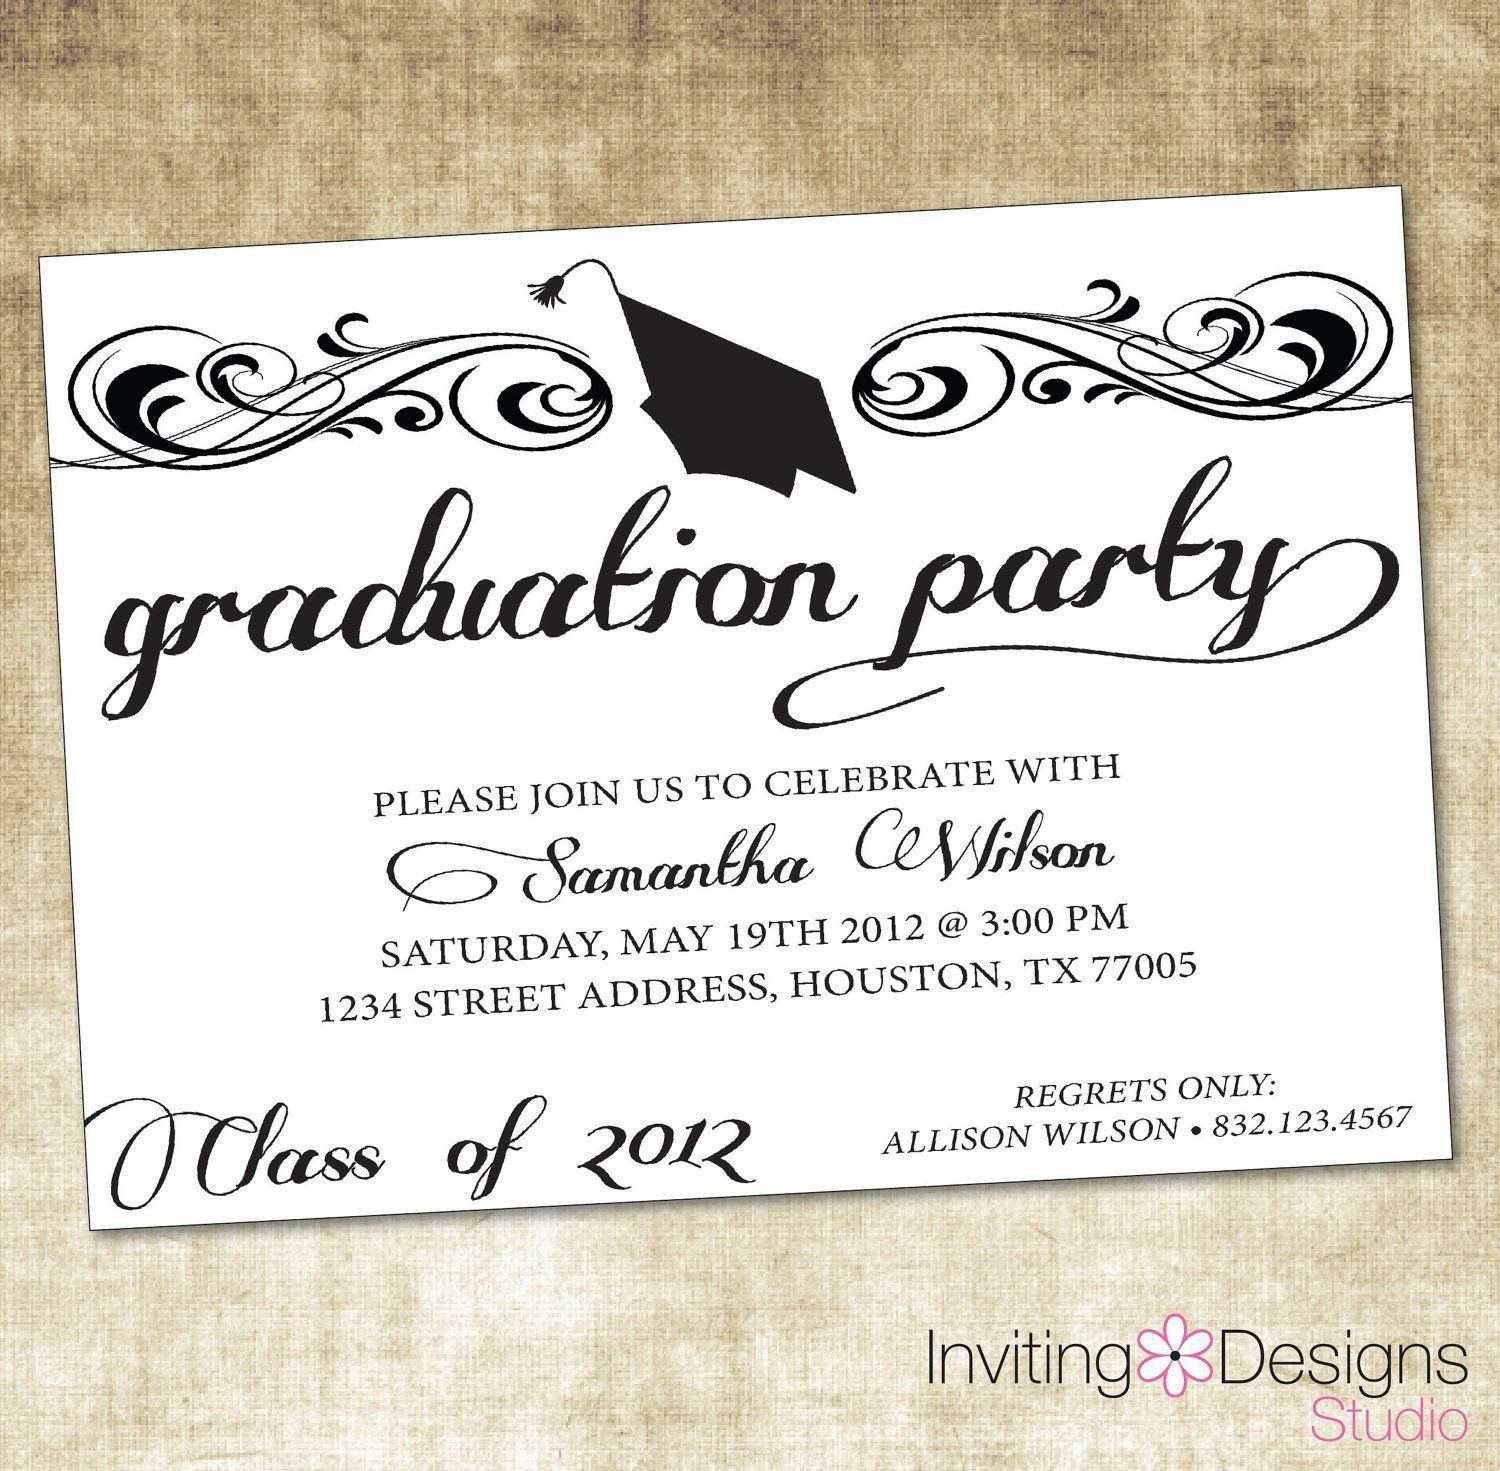 009 Exceptional Microsoft Word Graduation Party Invitation Template Concept Full